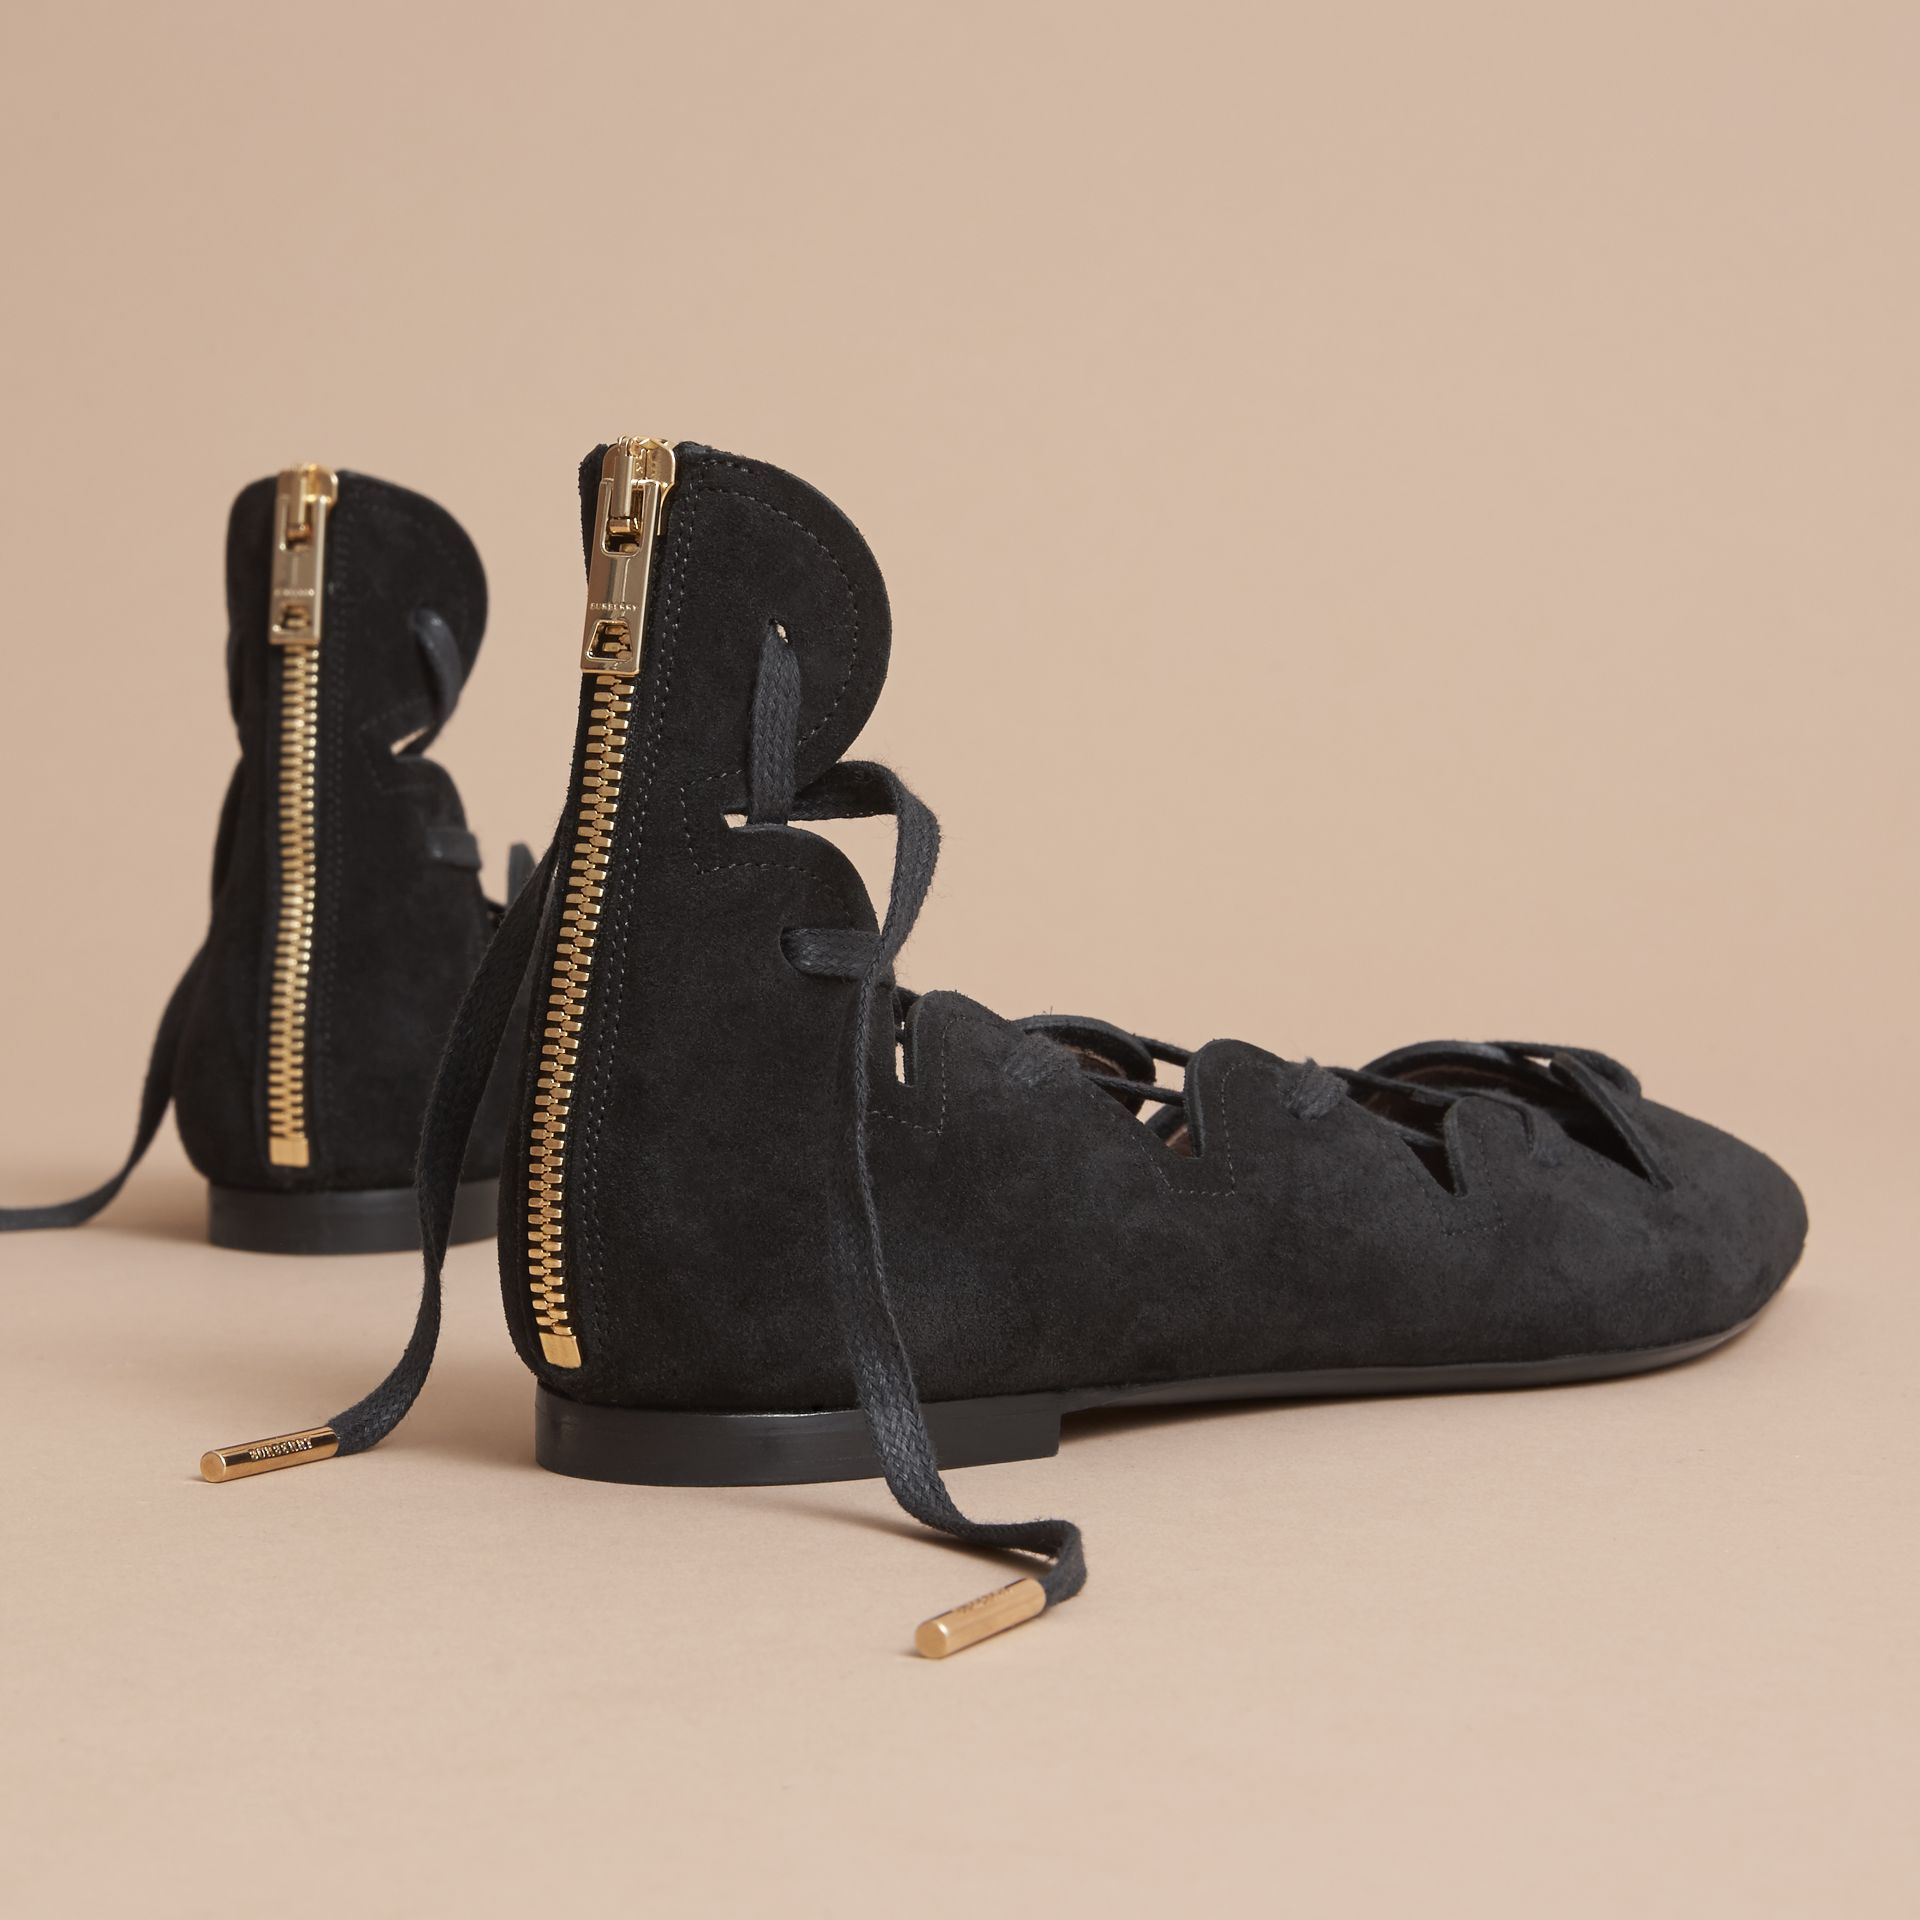 Scalloped Suede Lace-up Ballerinas in Black - Women | Burberry Singapore - gallery image 4